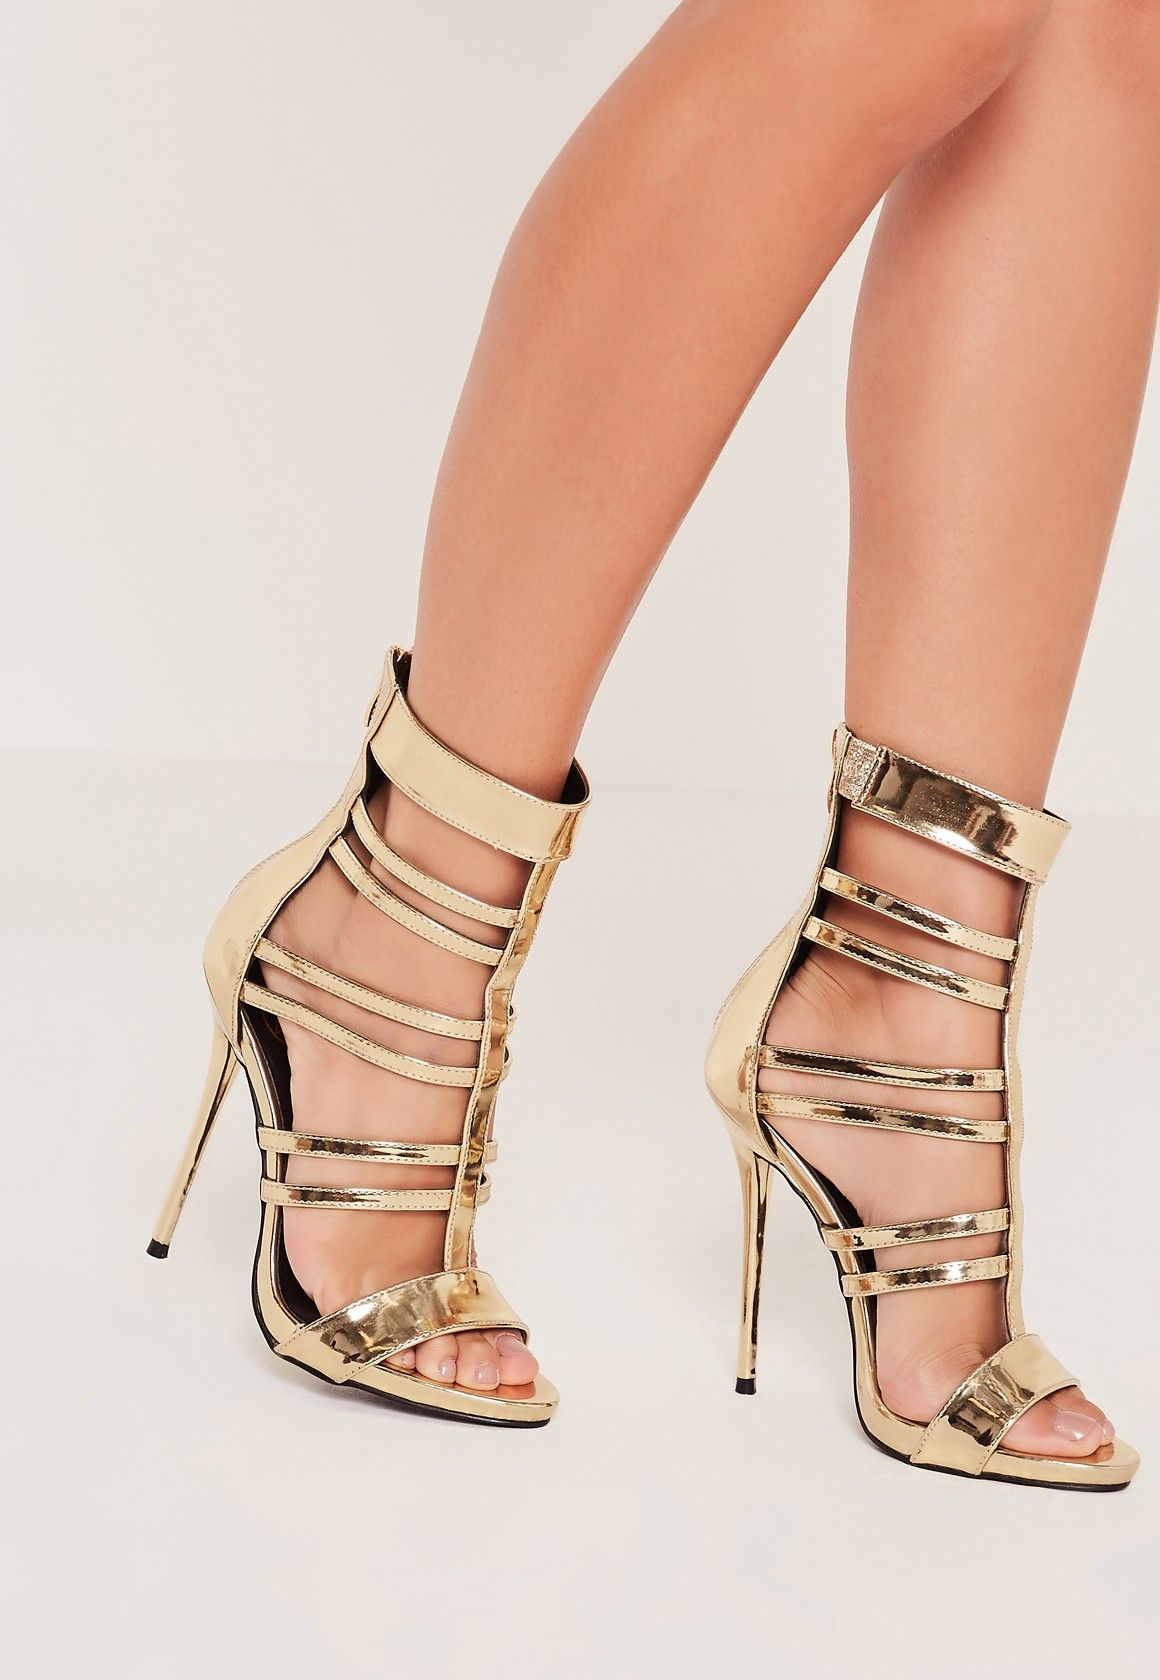 922d7638971 Missguided - T Bar Strappy Gladiator Heels Gold